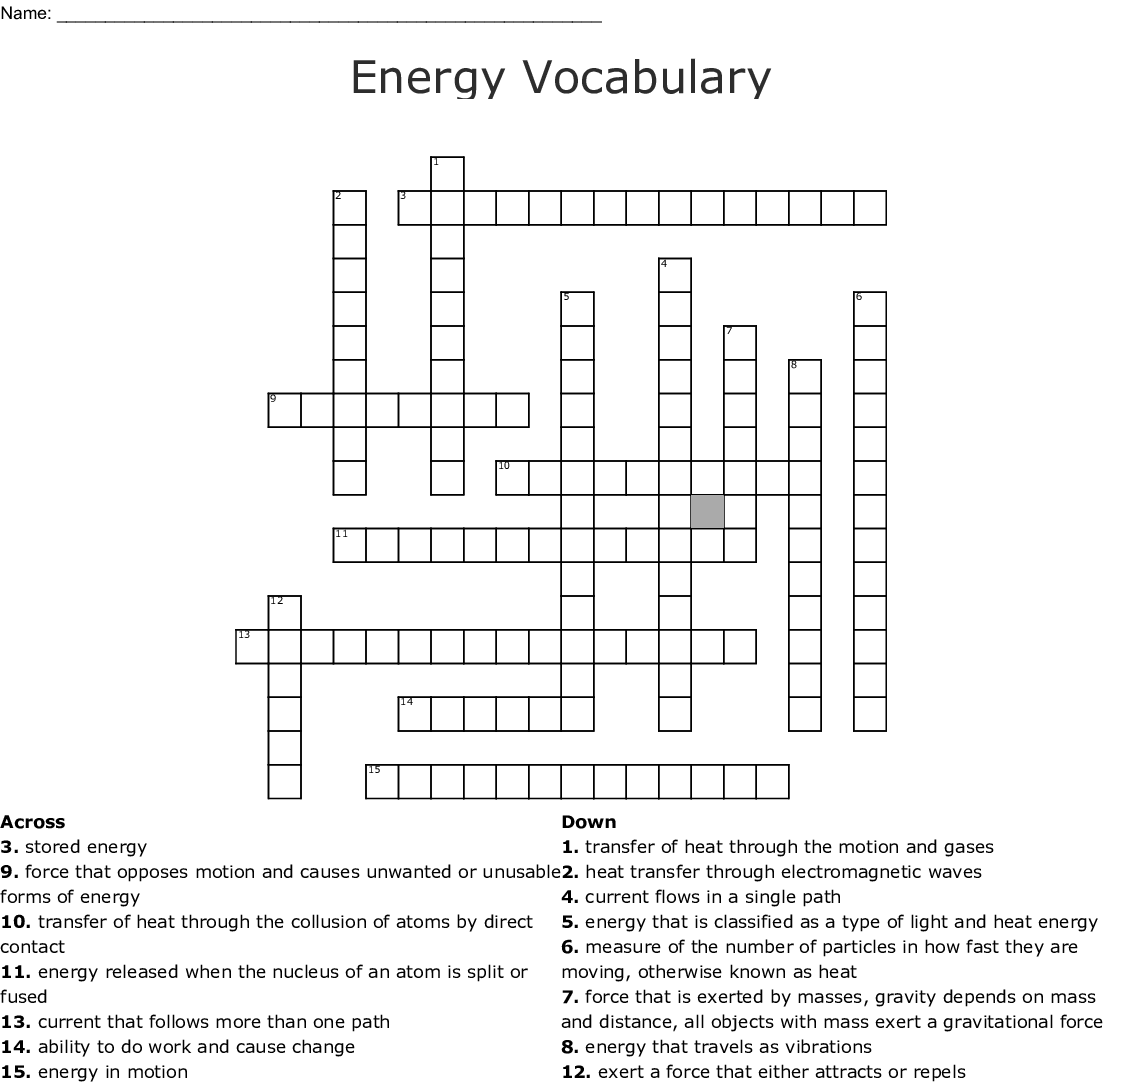 Printables Of Energy Vocabulary Worksheet Answer Key